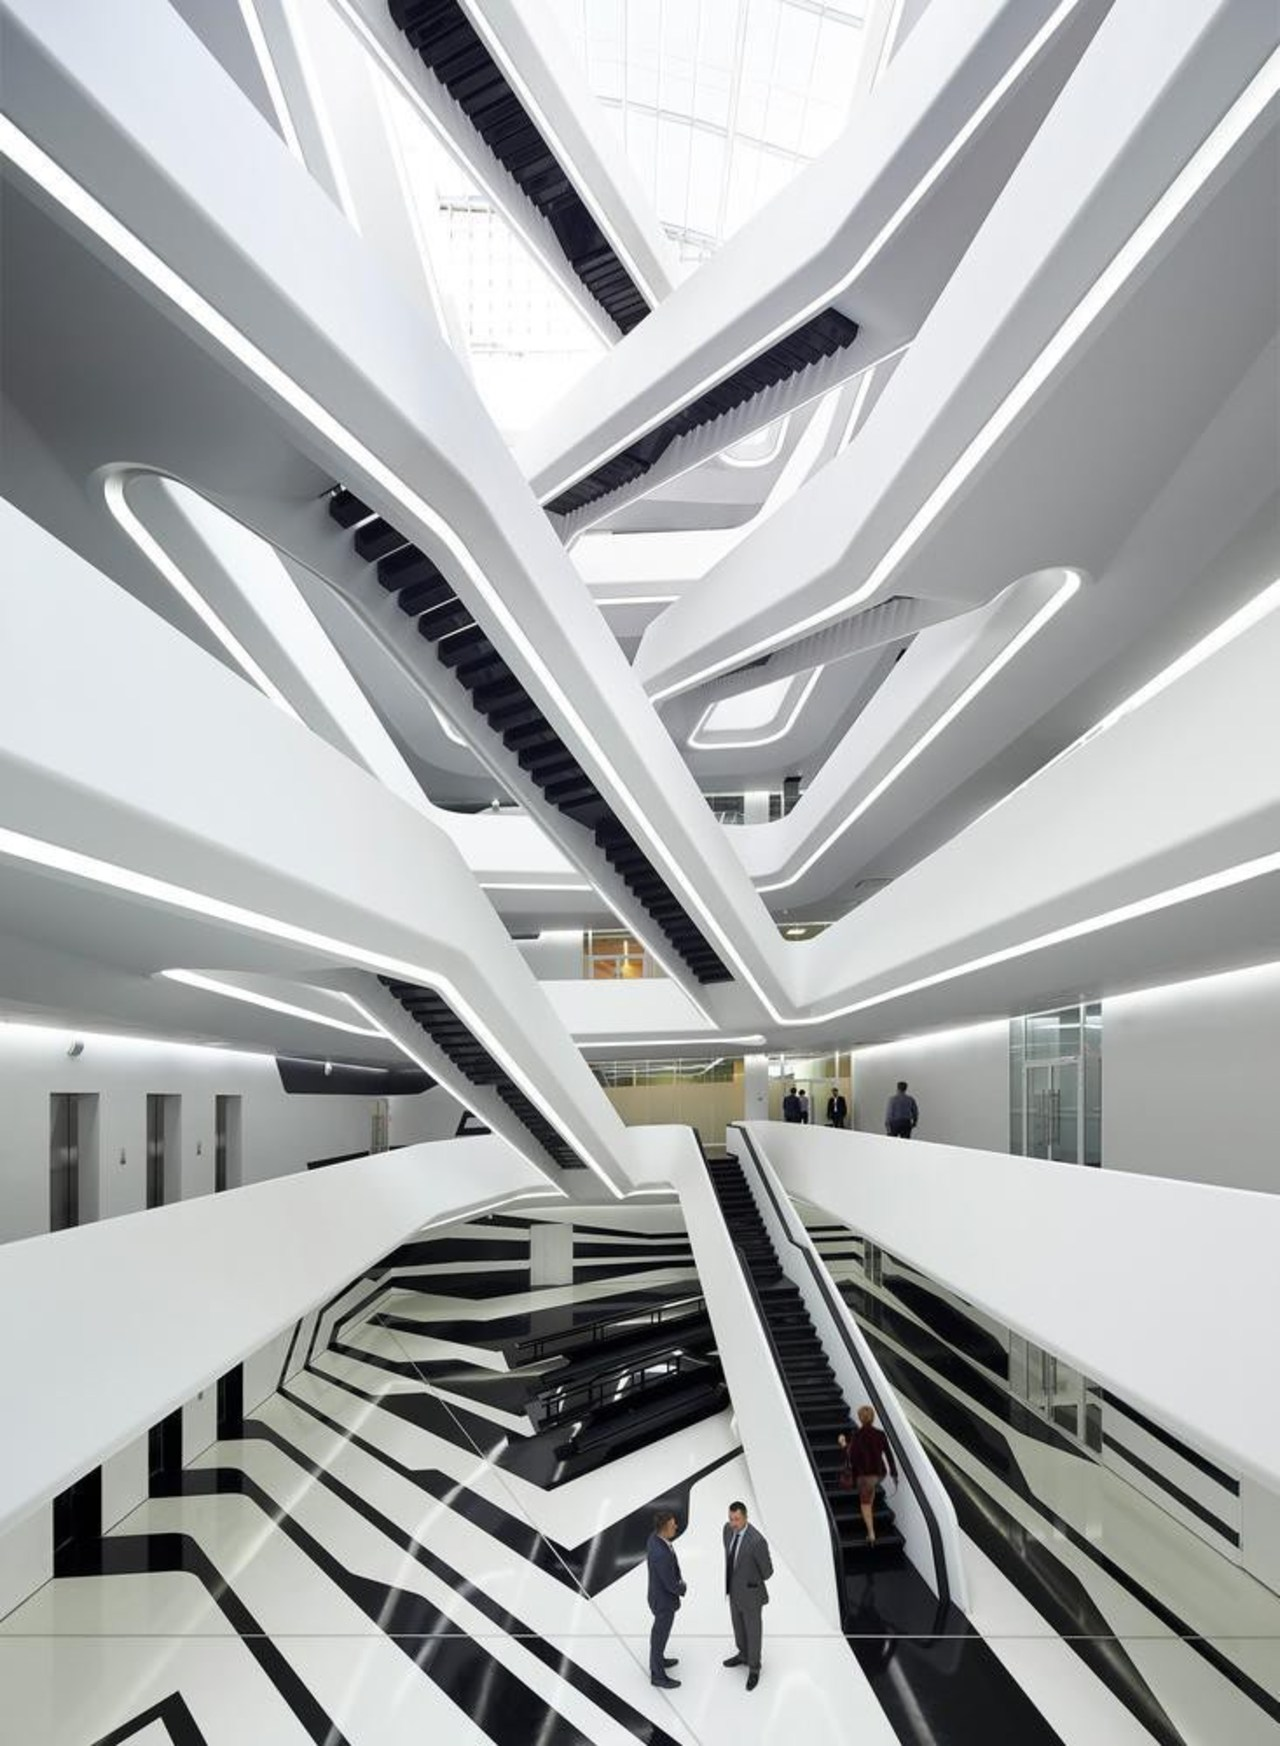 Farewell to Dame Zaha Hadid architecture, building, ceiling, daylighting, interior design, line, product design, structure, white, gray